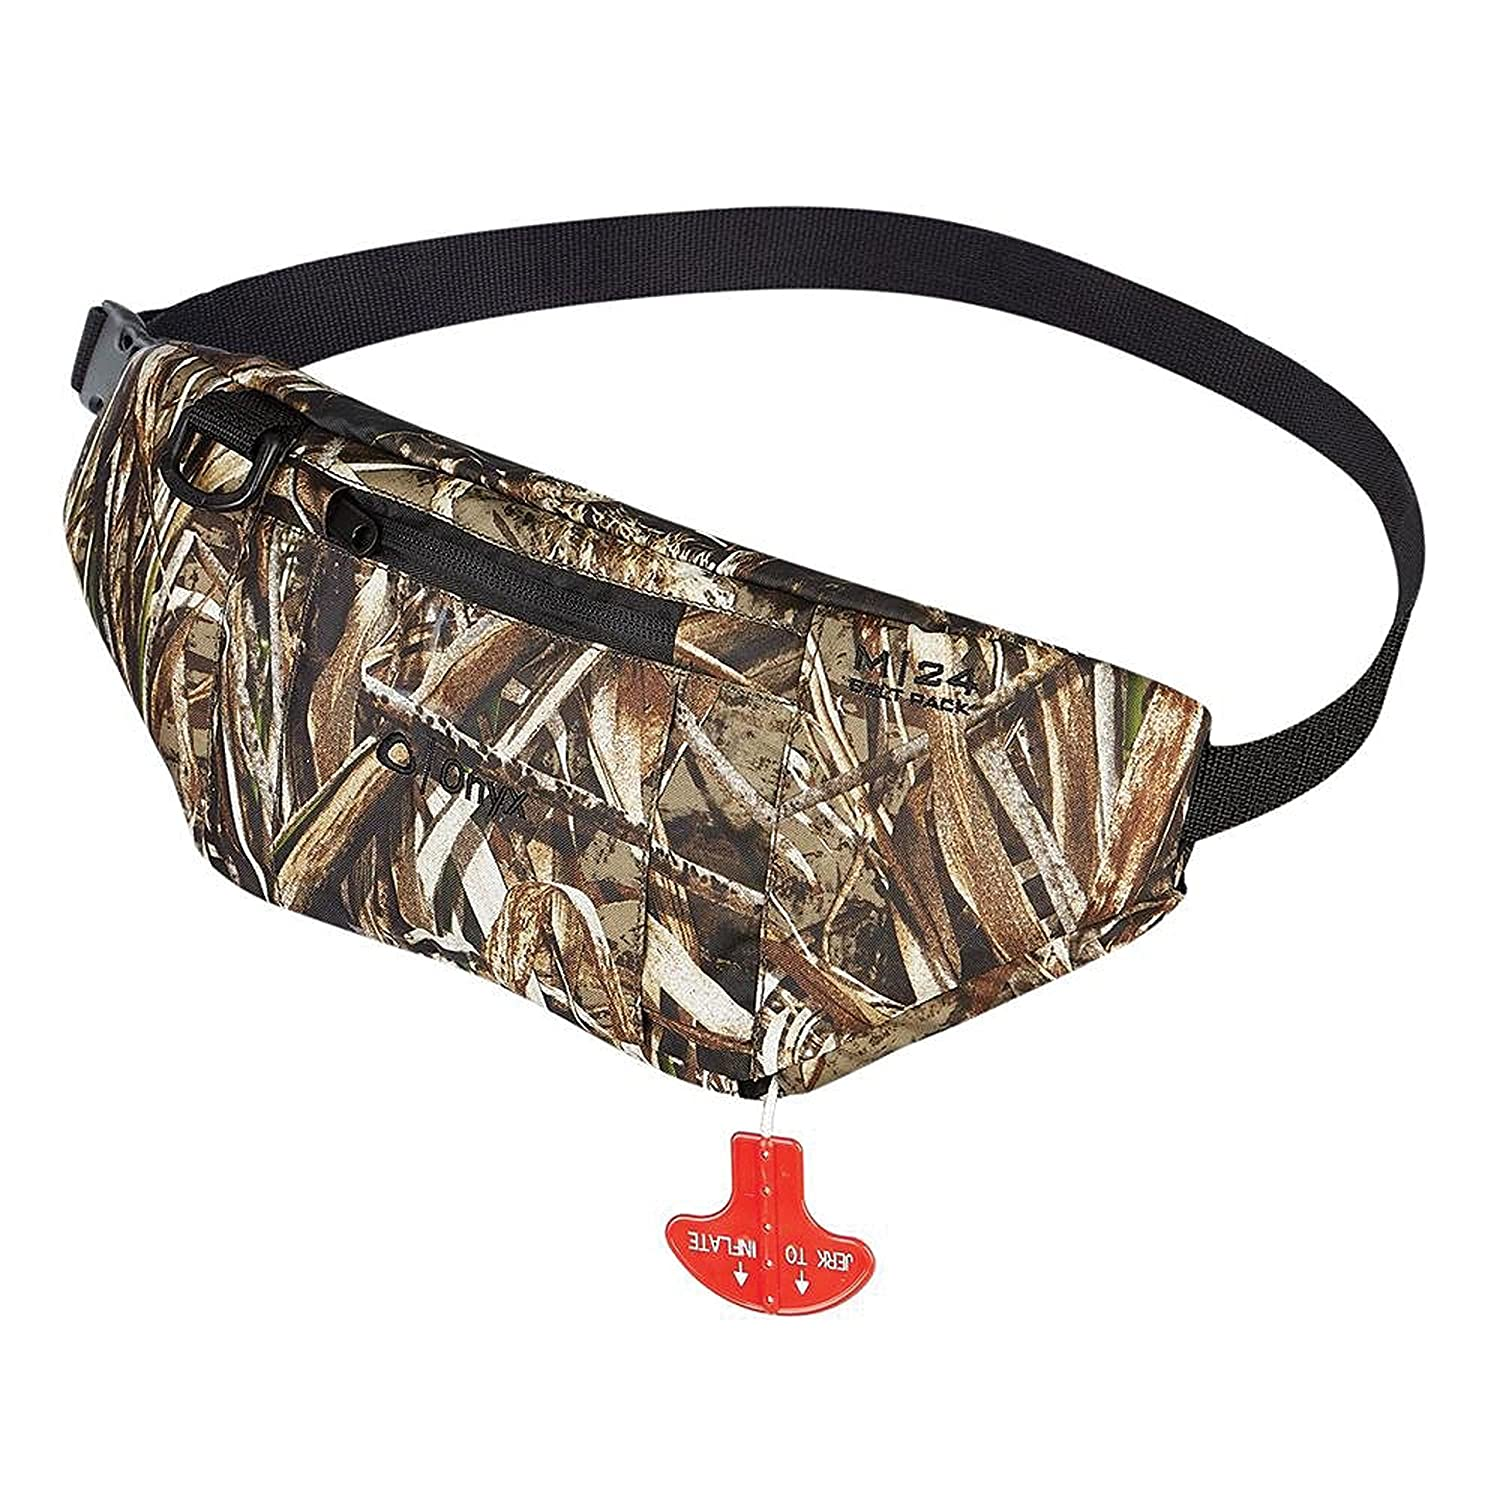 M-24 Manual Inflatable Belt Pack, Camo Absolute Outdoors 130000-812-004-15